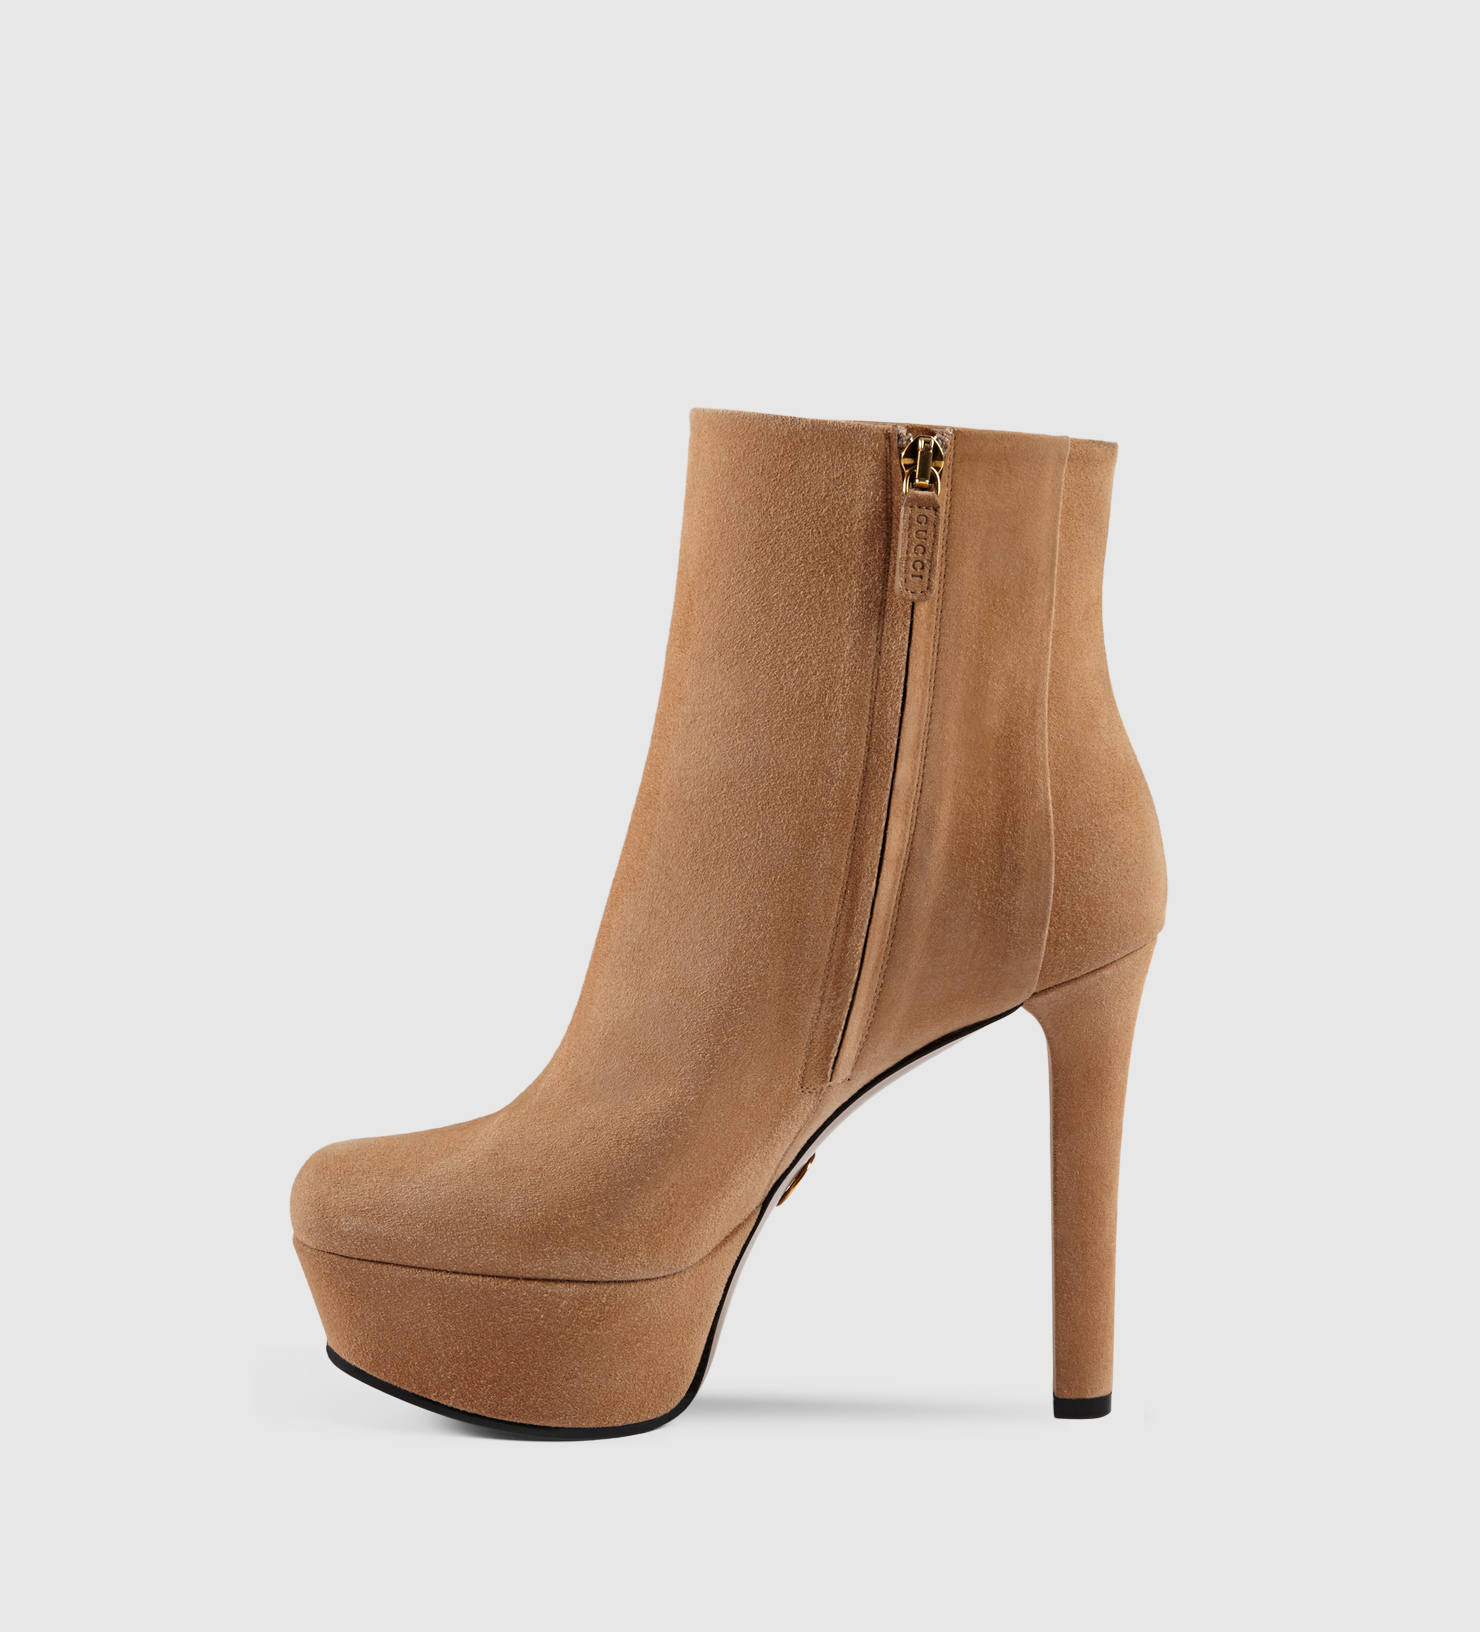 gucci leila suede platform ankle boot in brown lyst